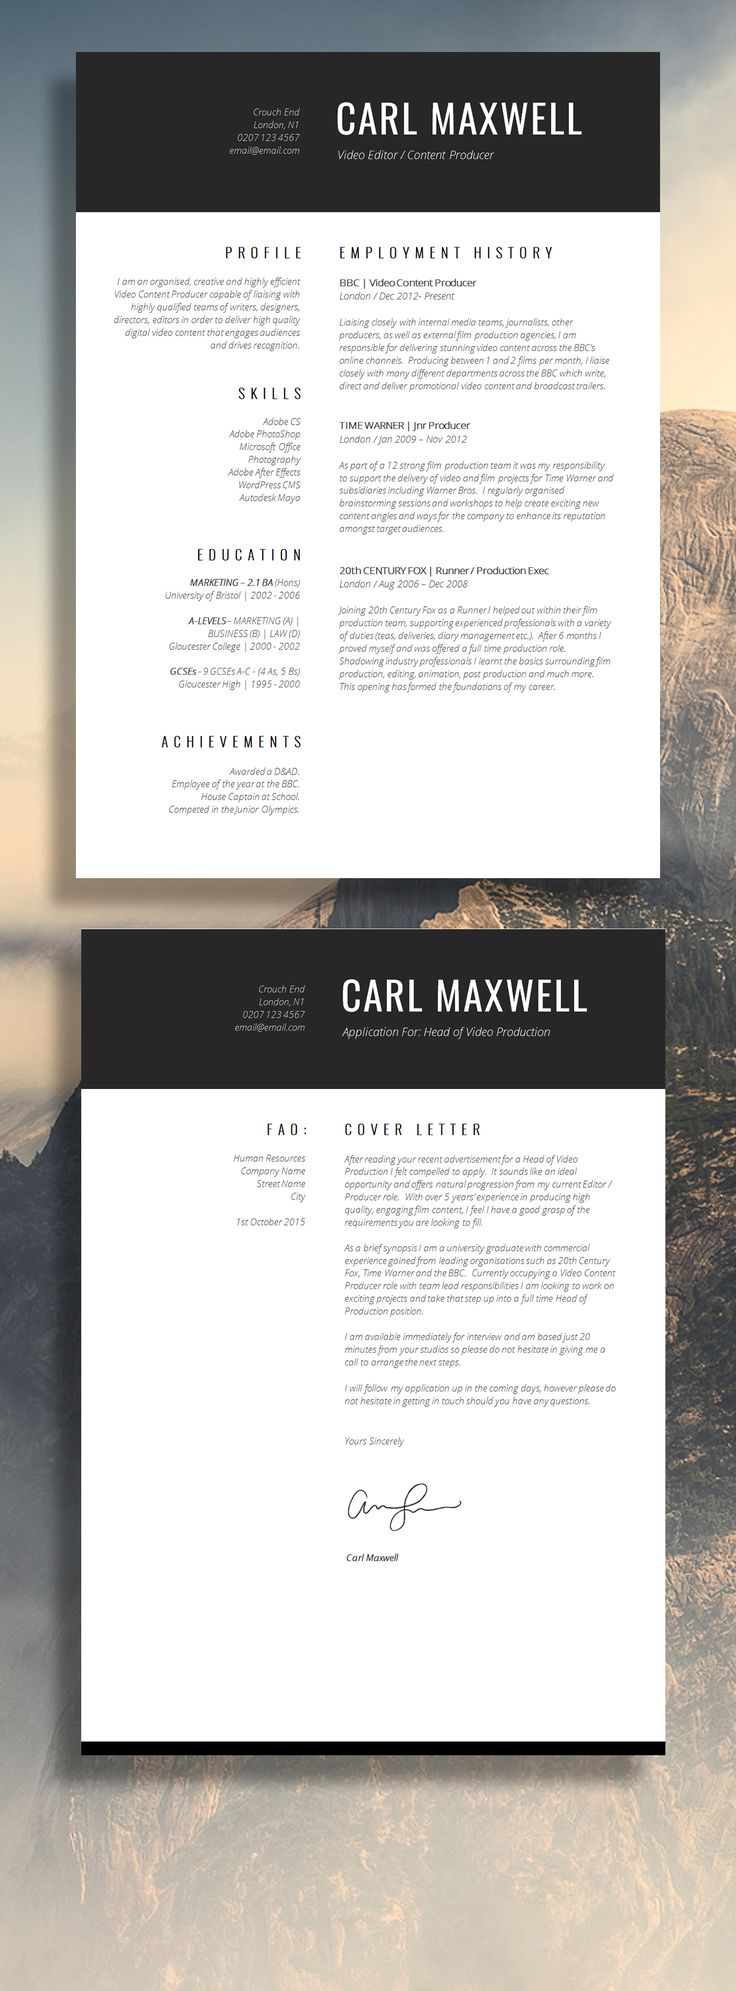 best ideas about resume design resume resume be prepared for corporate life this cv resume will help you win